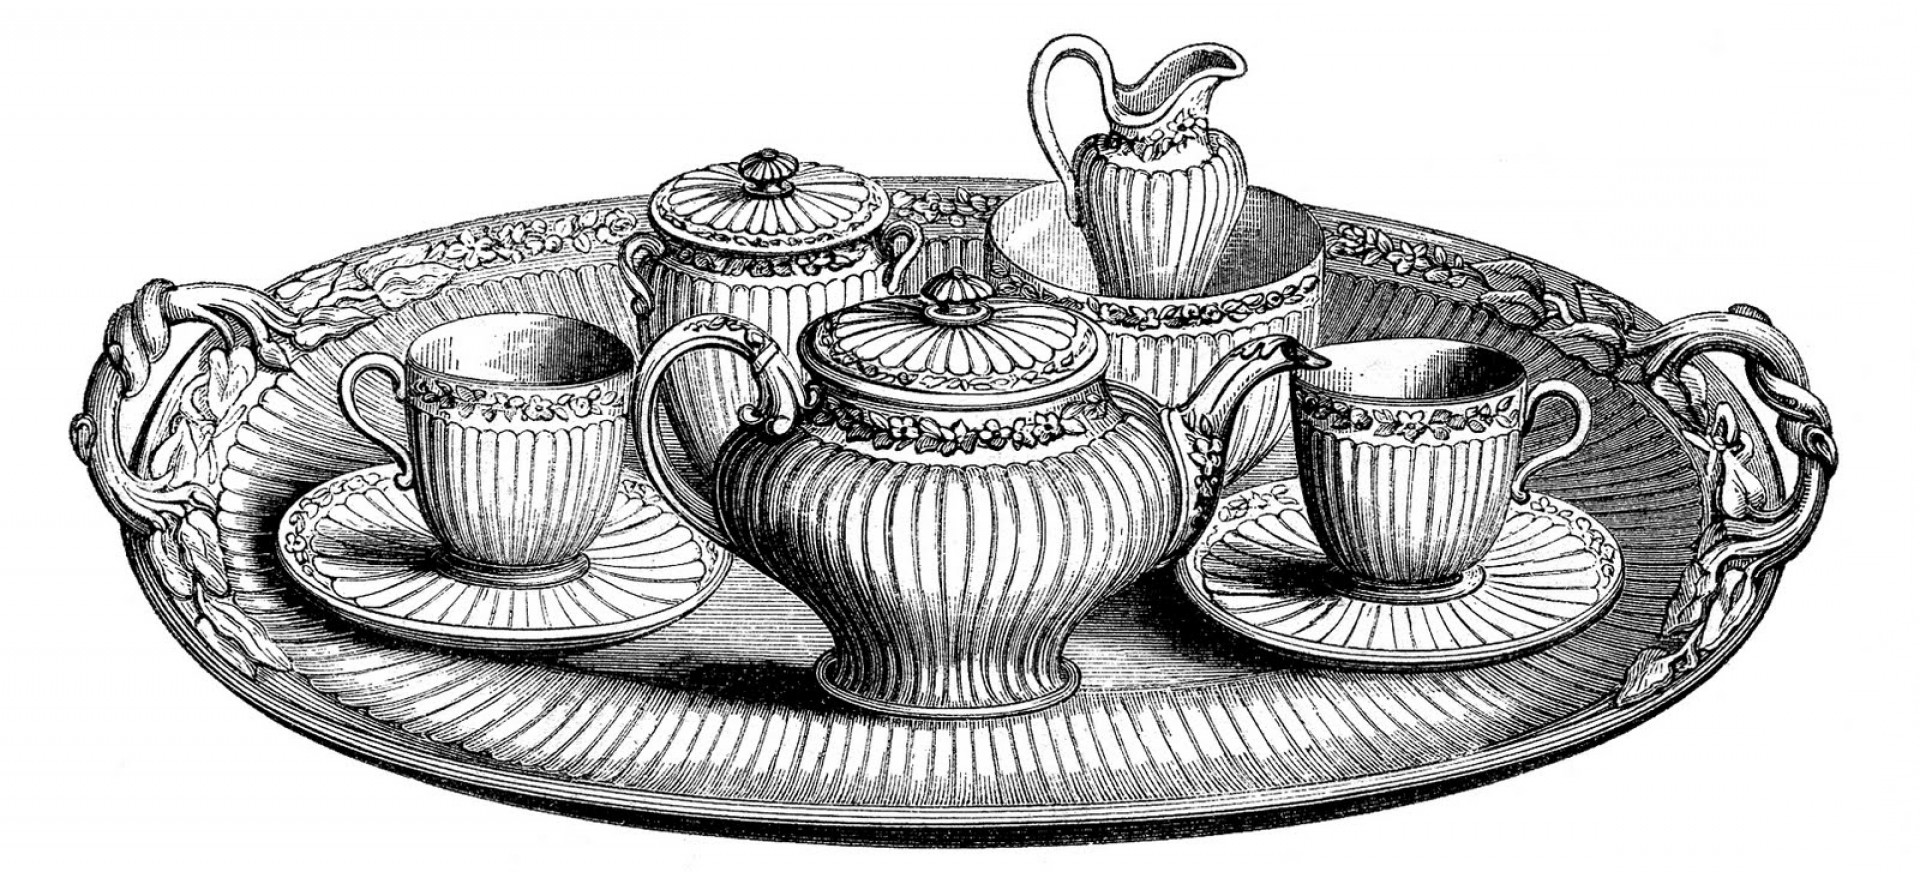 Vintage Tea Cup Vector: Vintage Clip Art Tea Set With Platter